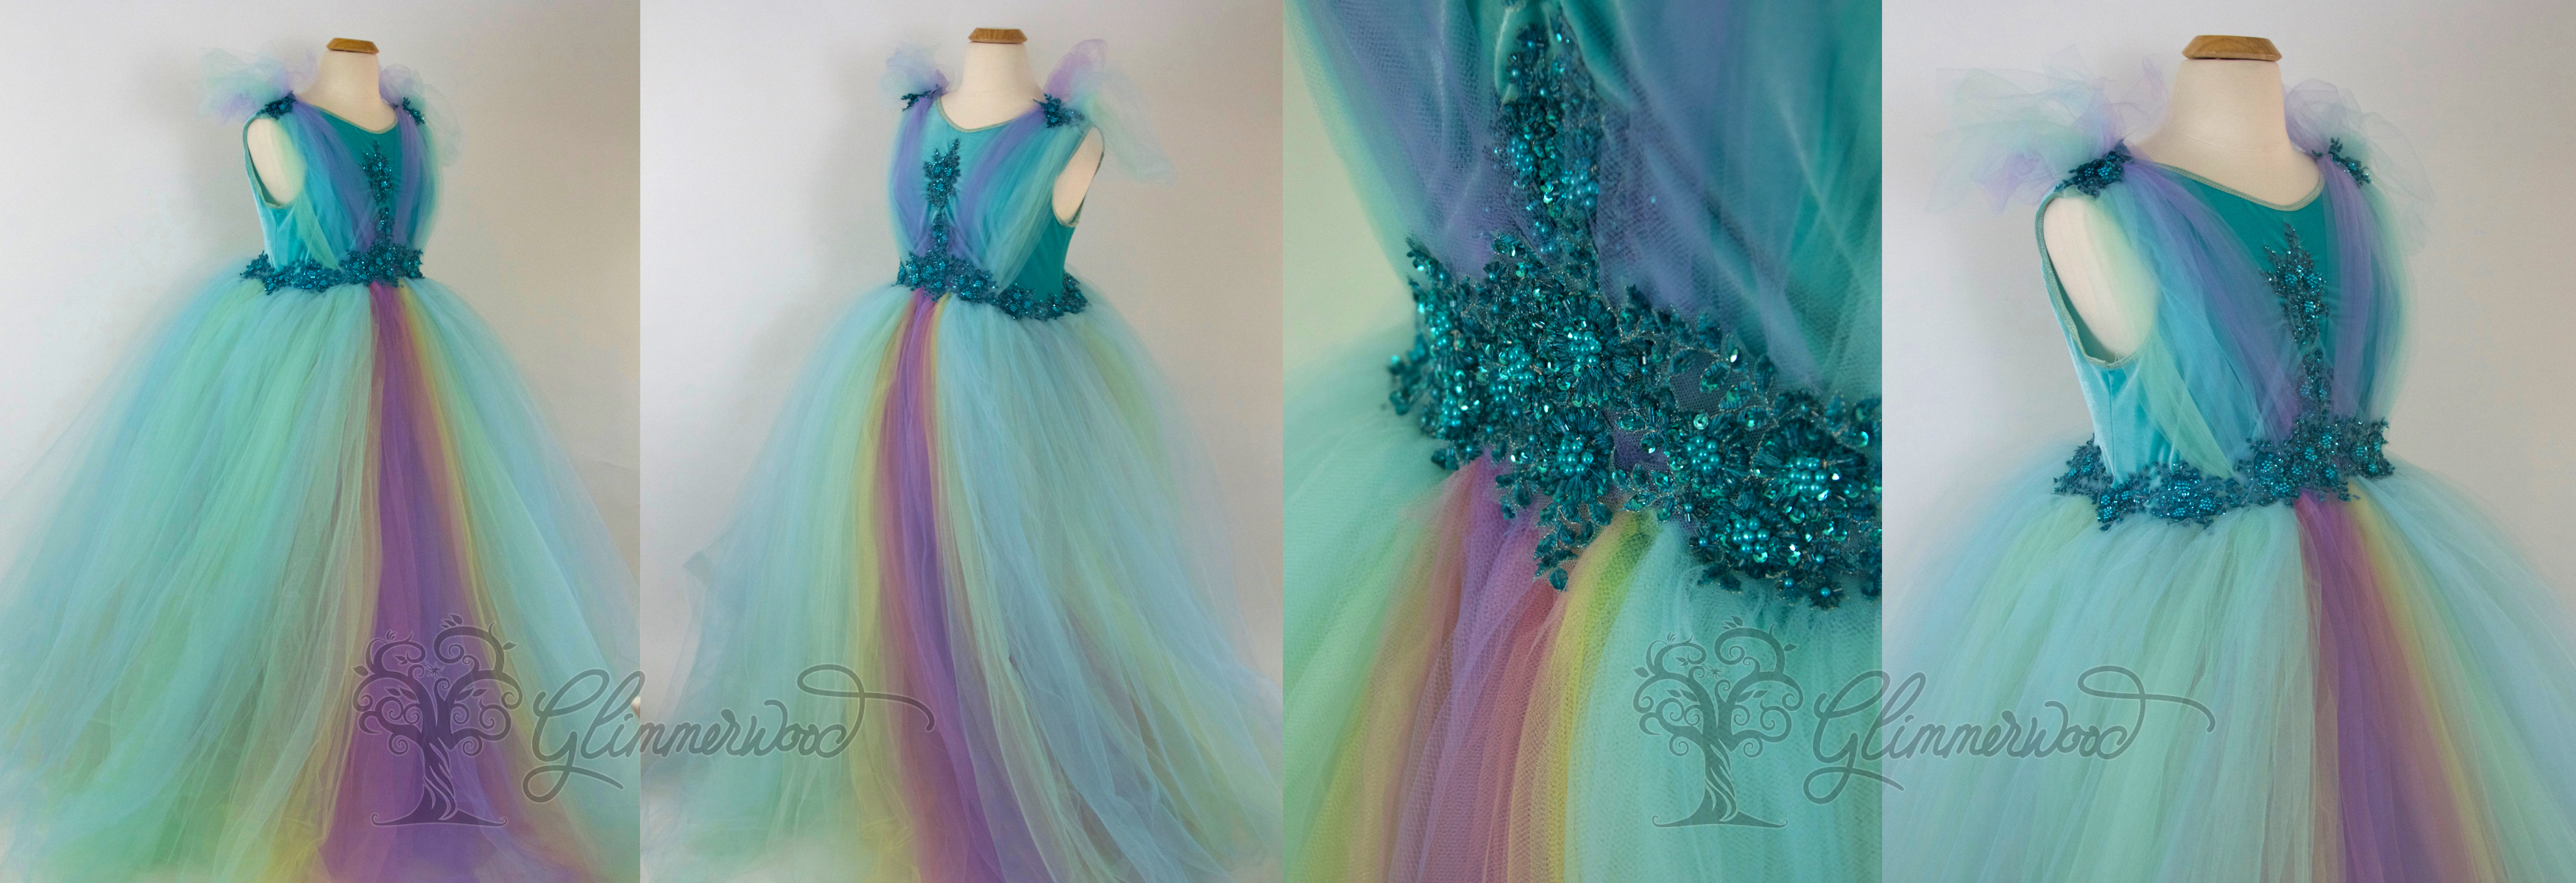 Rainbow Maternity Gown